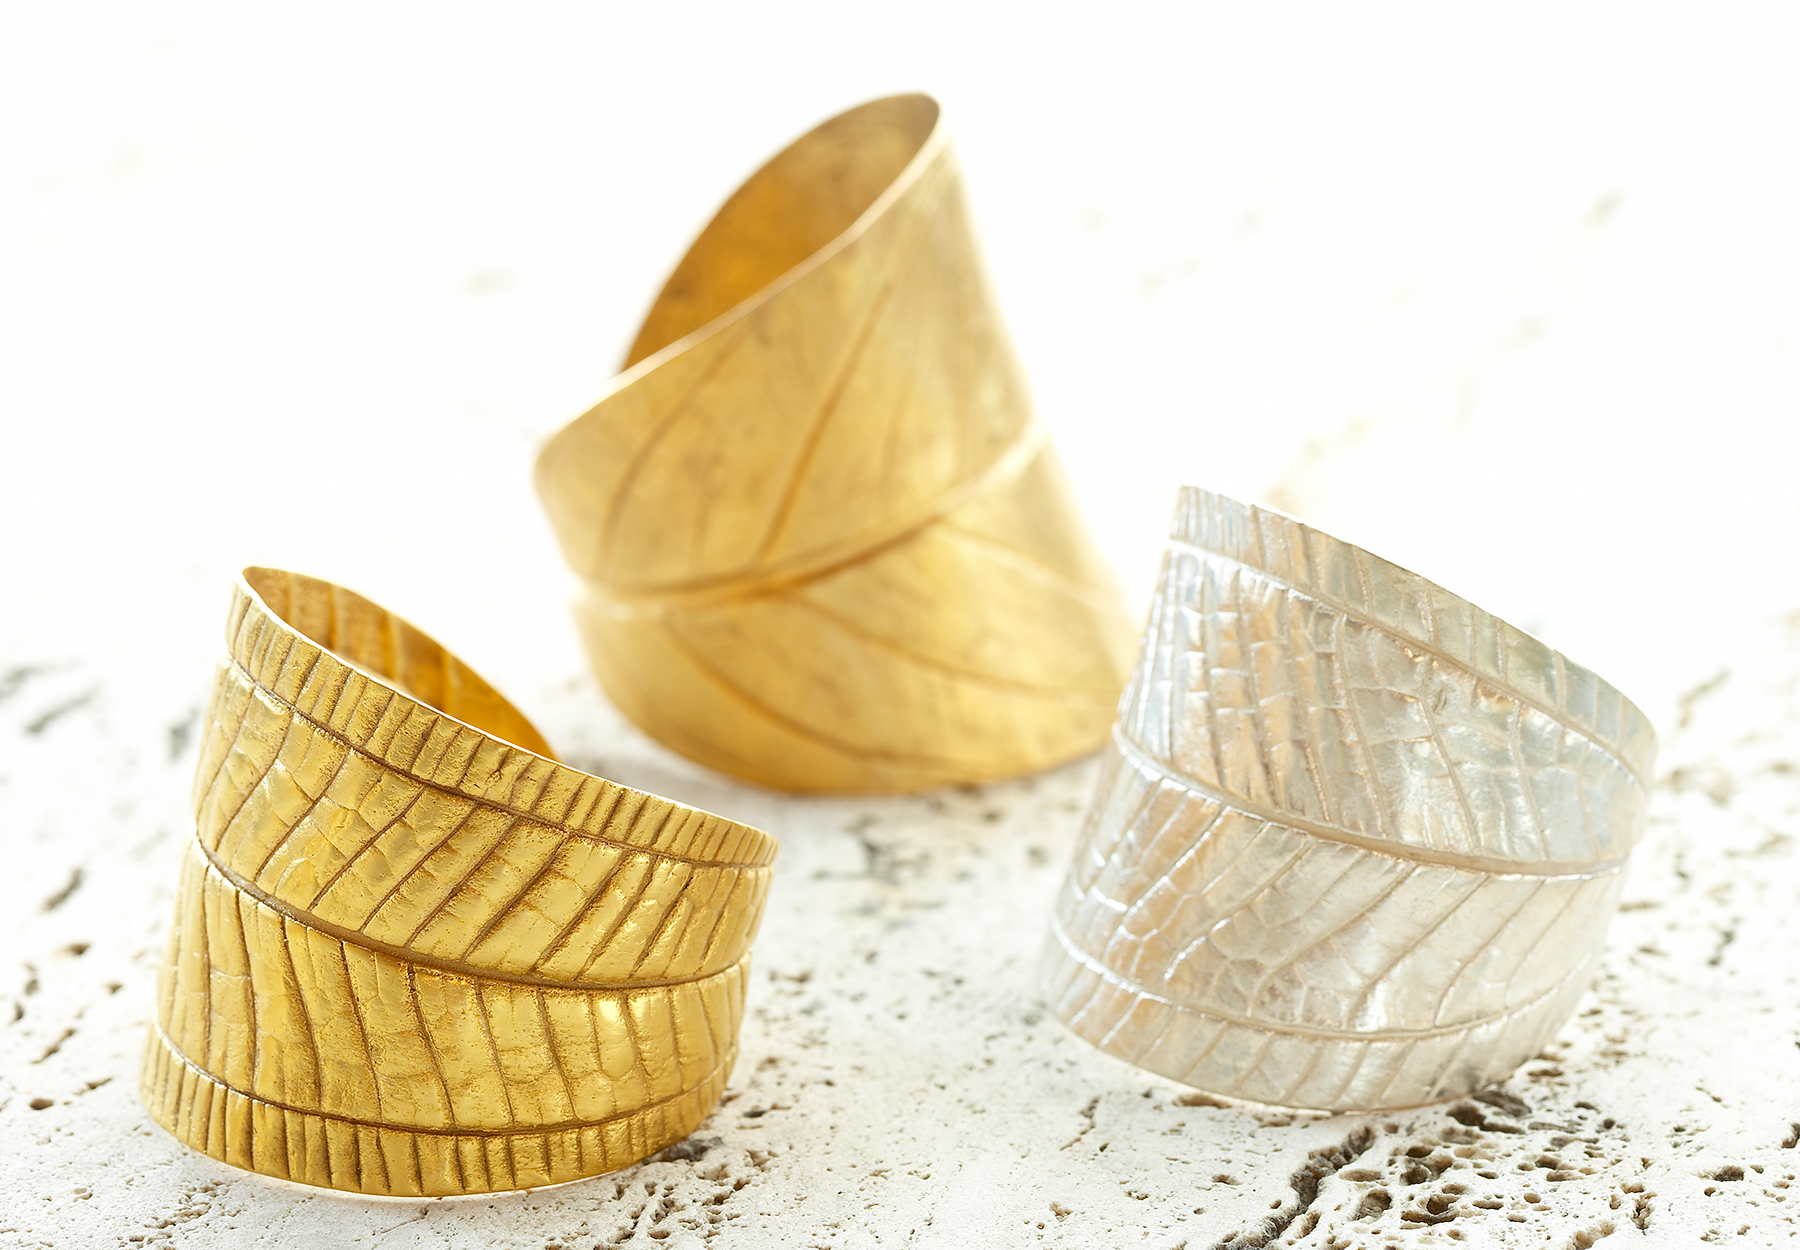 gold cuff bracelet art director for product advertising